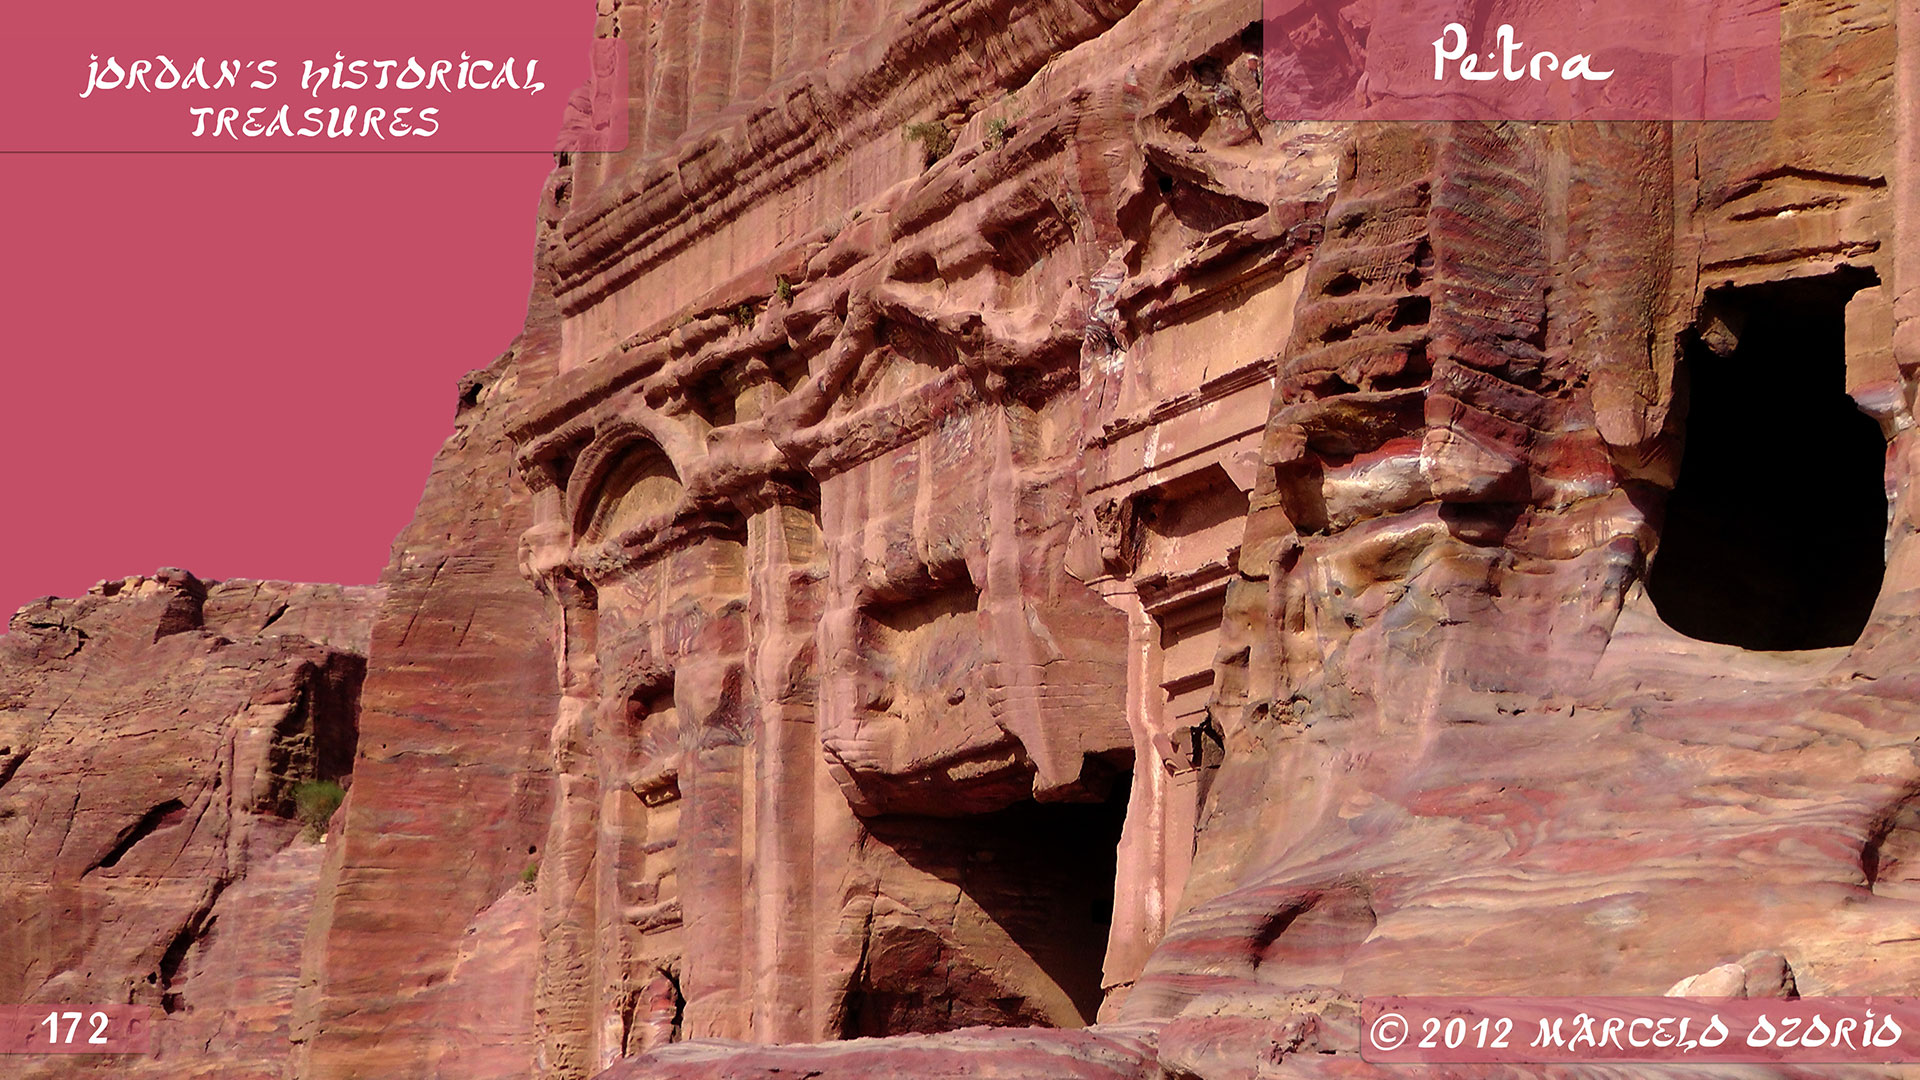 Petra Archaeological City Jordan 92 - The Astonishing Treasure at Petra - Jordan